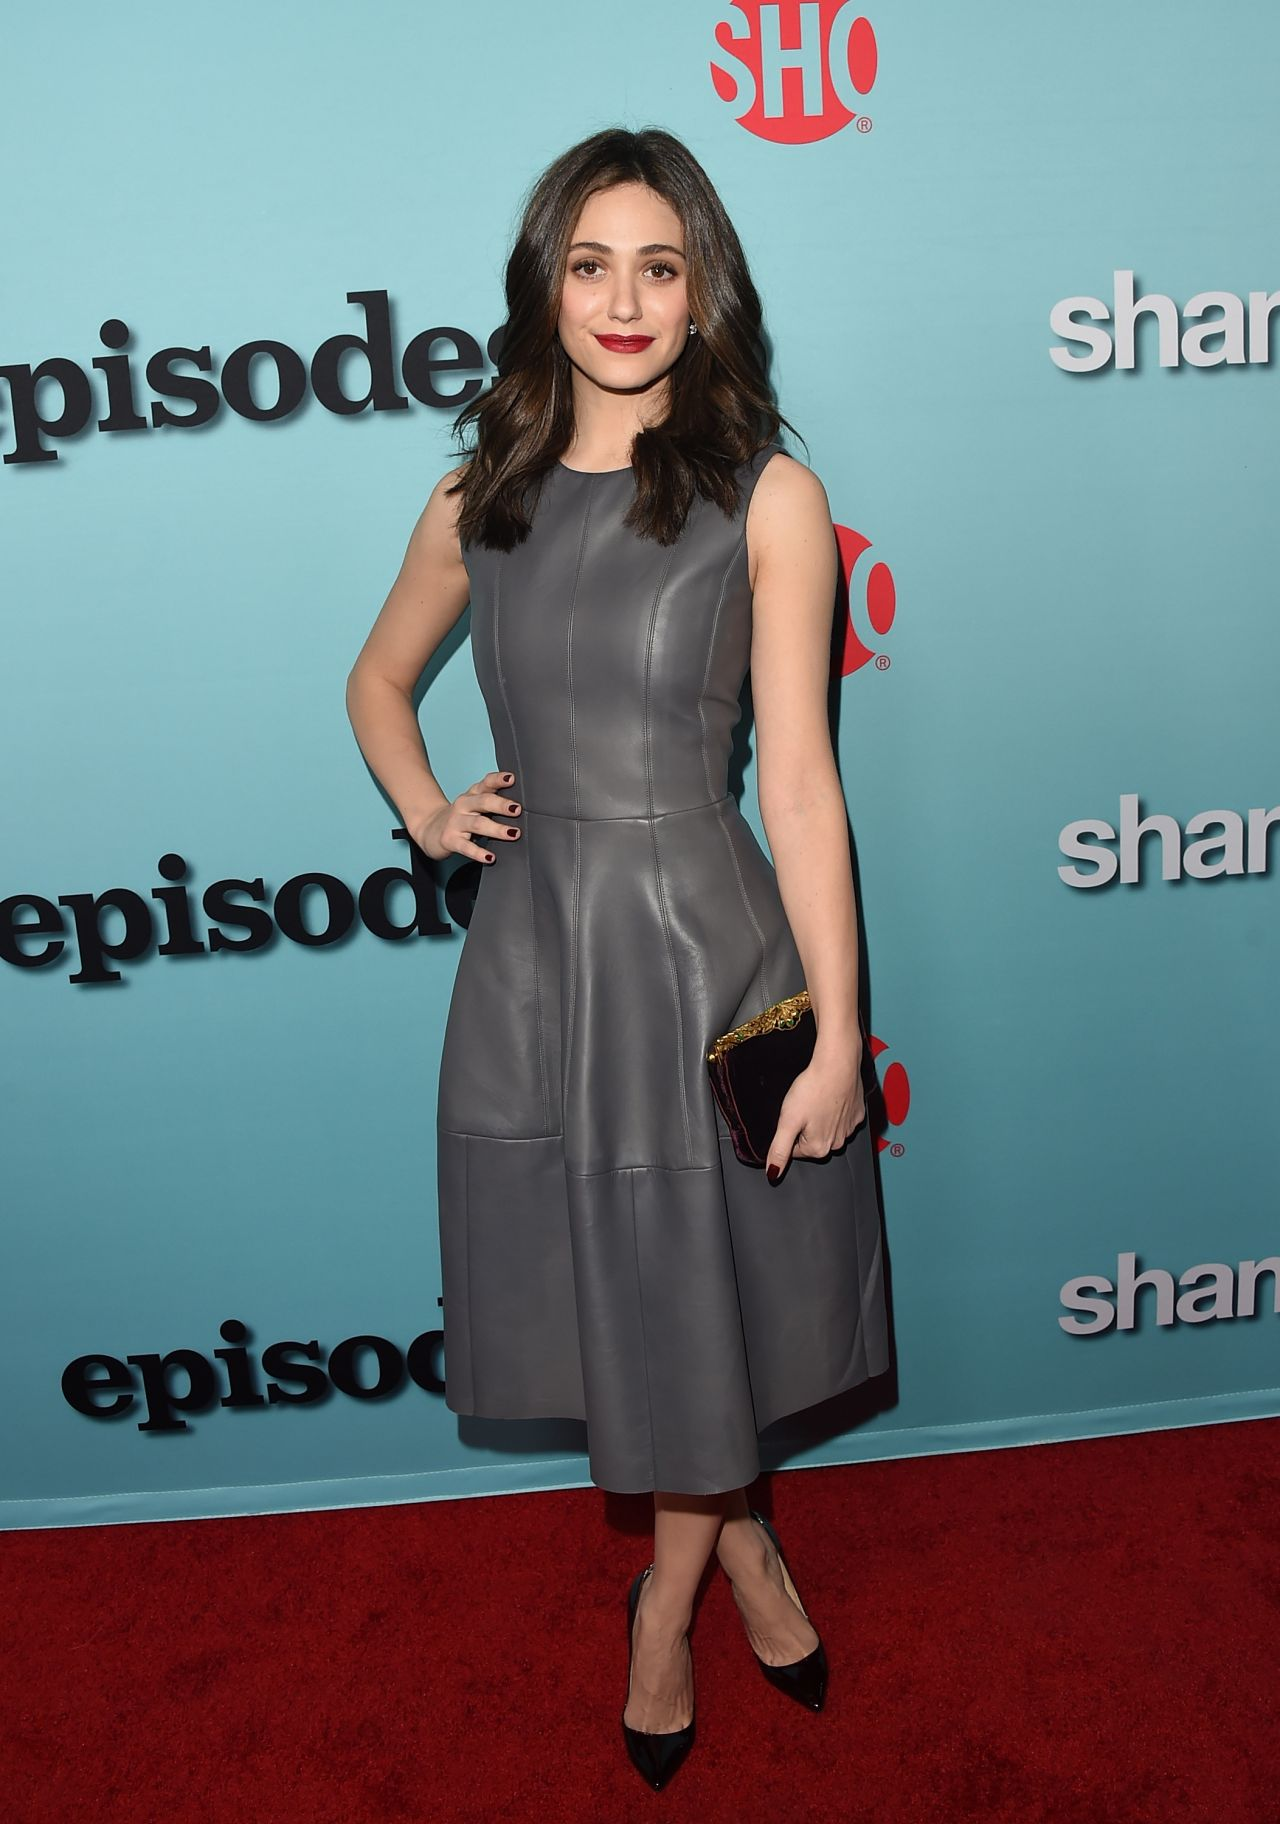 emmy-rossum-shameless-house-of-lies-and-episodes-premiere-in-west-hollywood_16